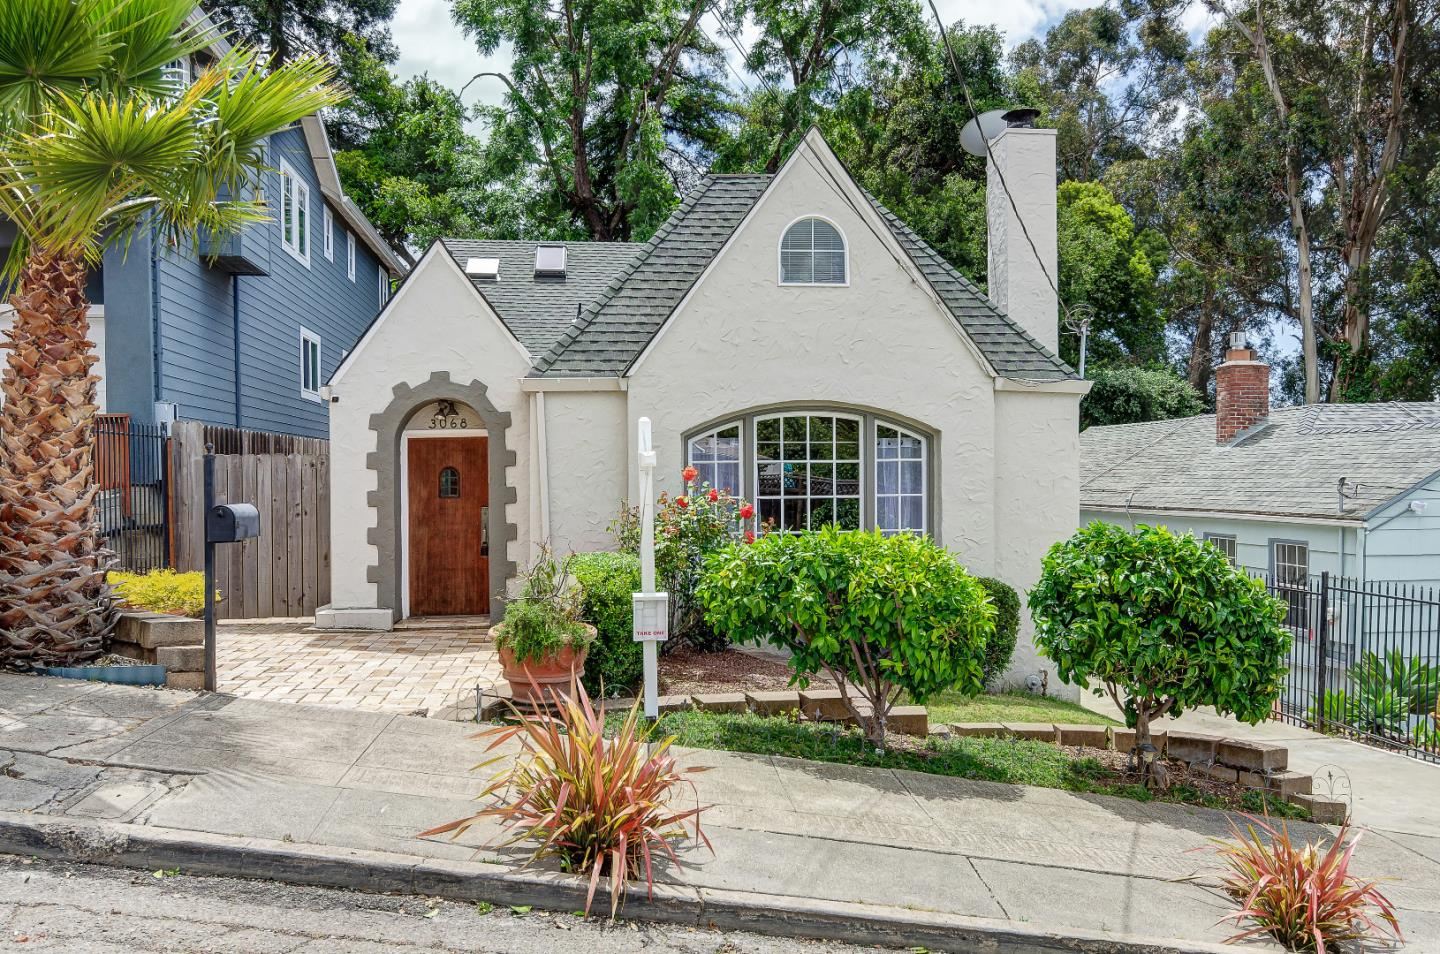 Image not available for 3068 Tully Place, Oakland CA, 94605